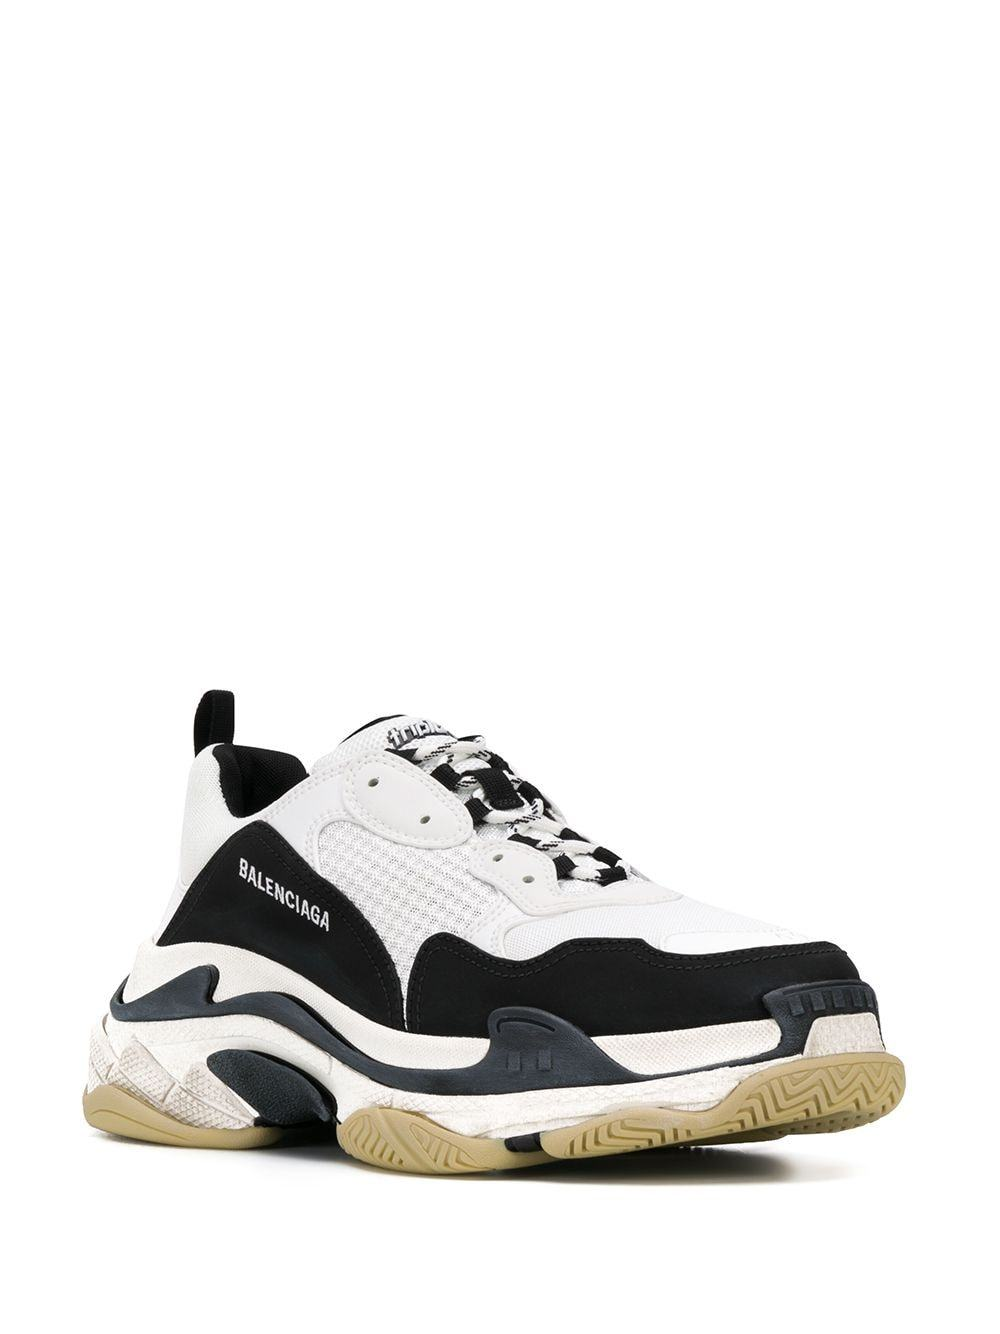 BALENCIAGA double foam triple s sneakers